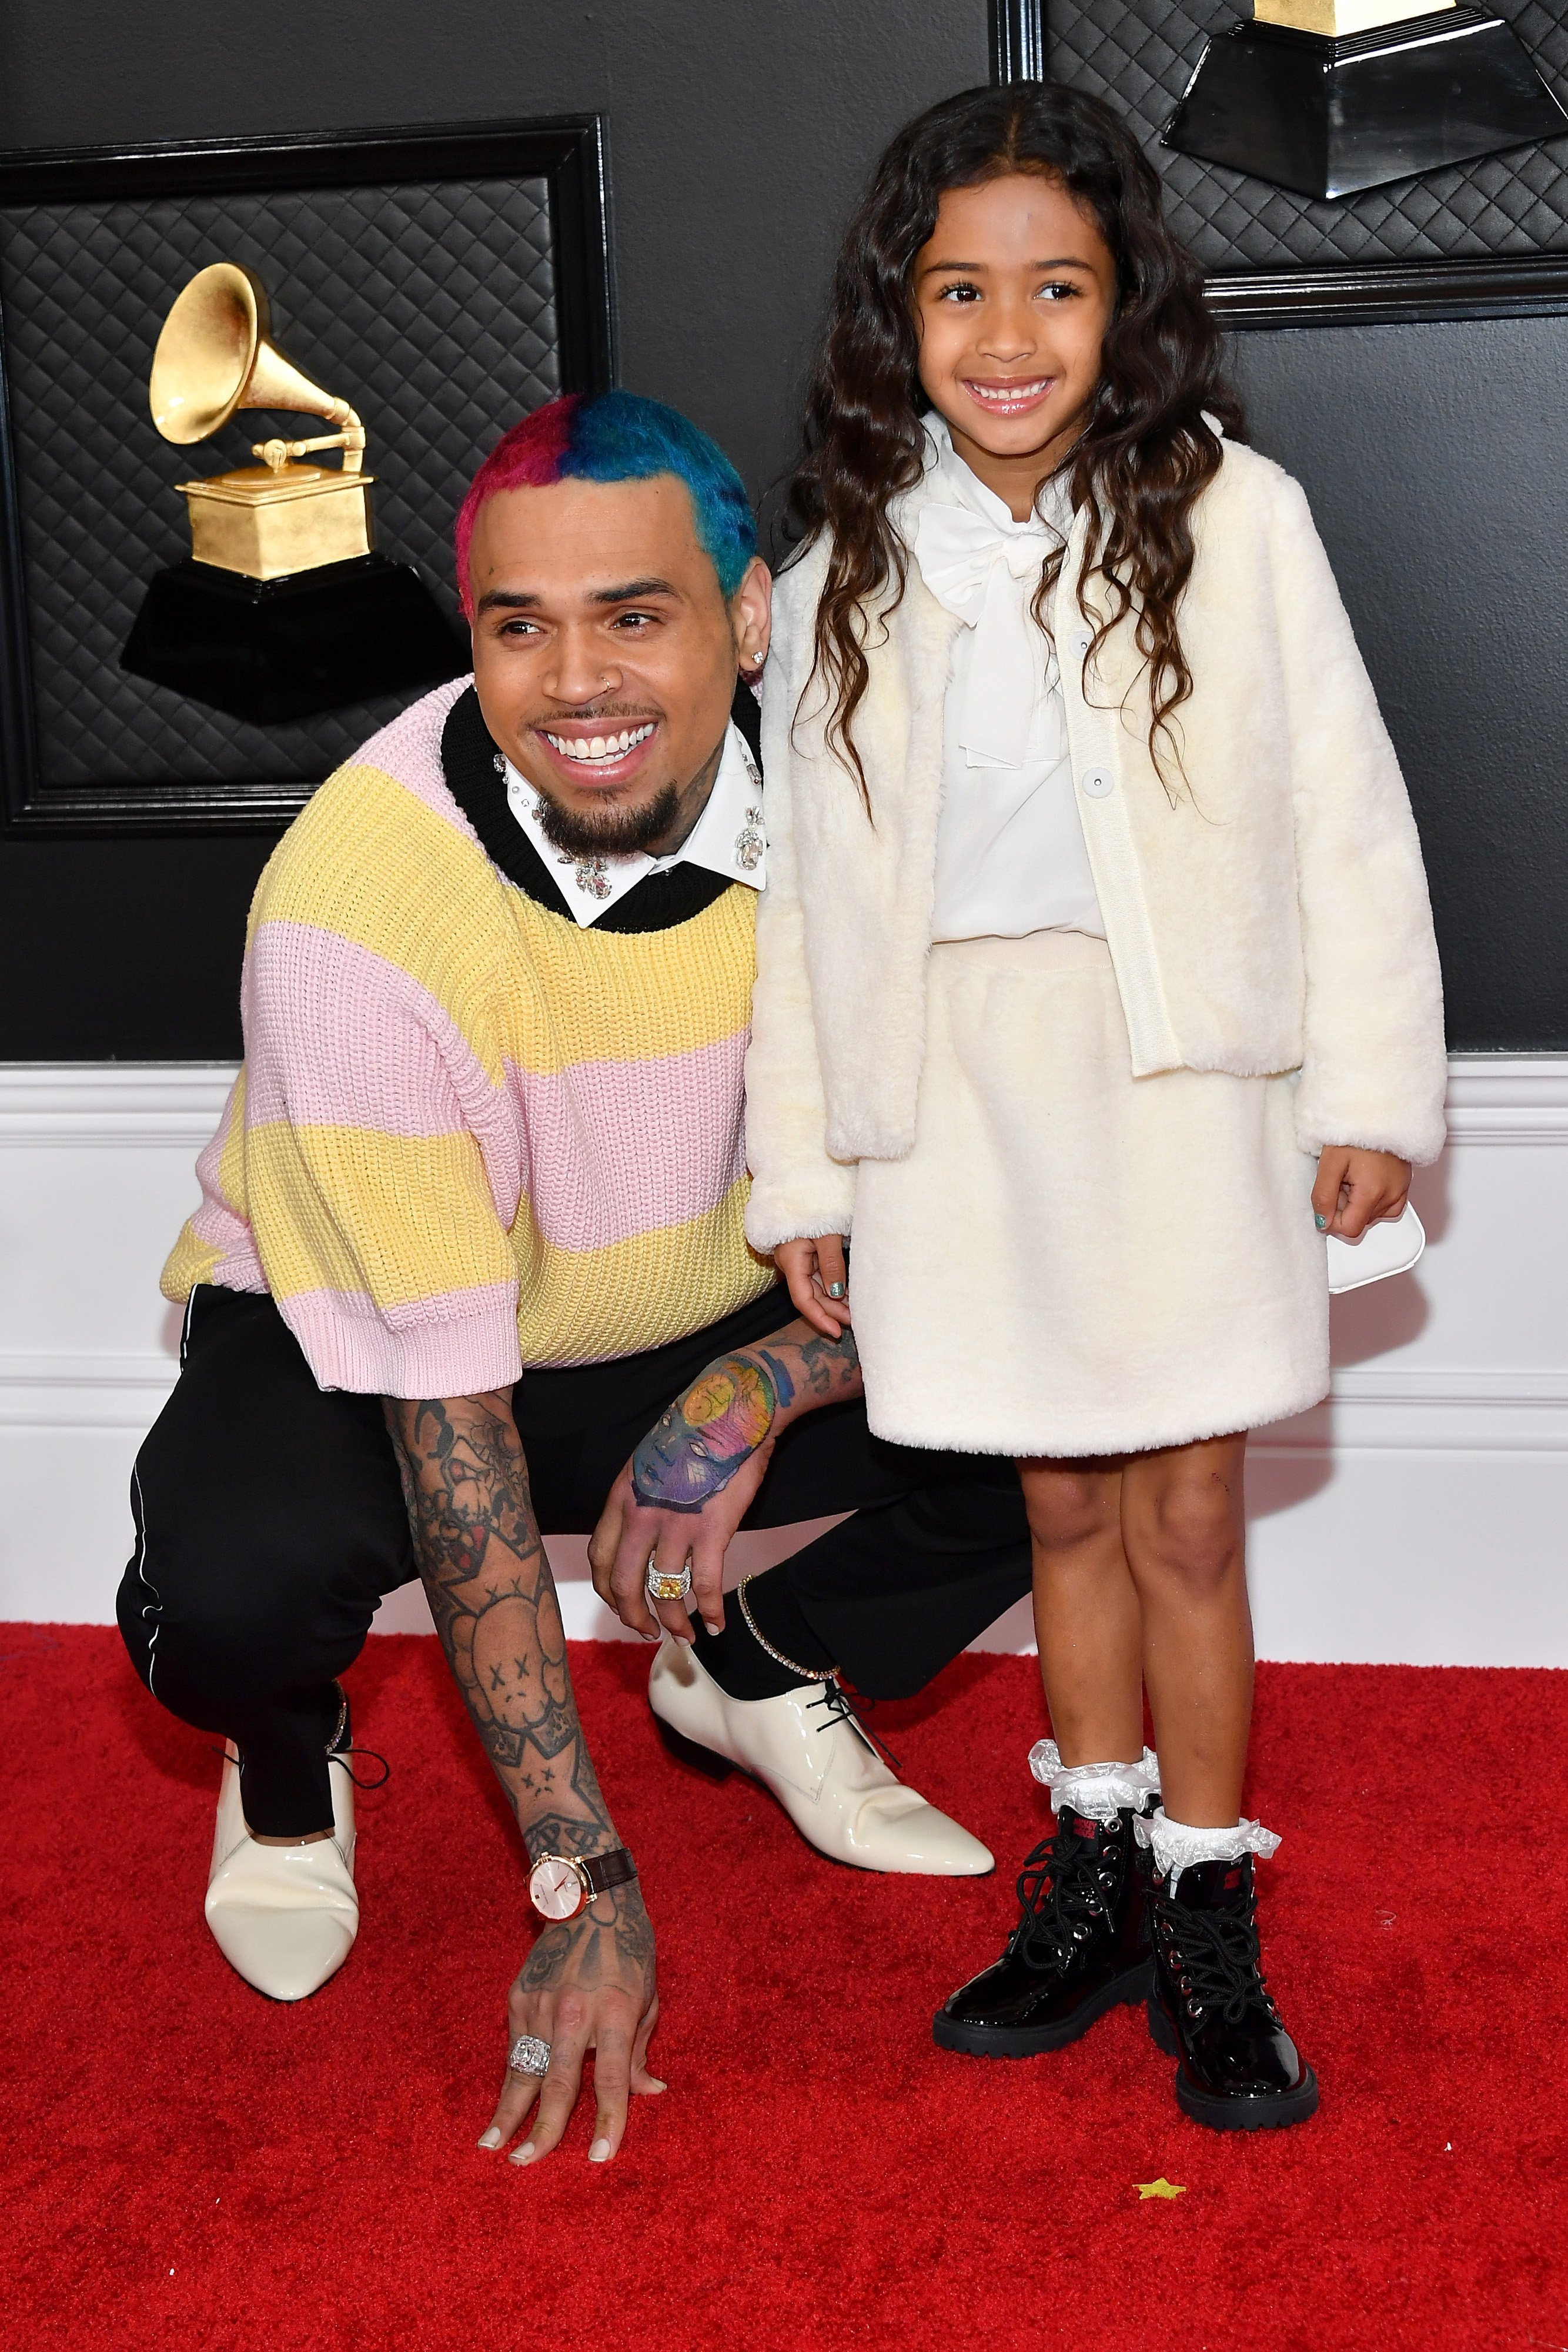 Chris Brown and Royalty Brown attend the 62nd Annual GRAMMY Awards at Staples Center on January 26, 2020. | Source: Getty Images